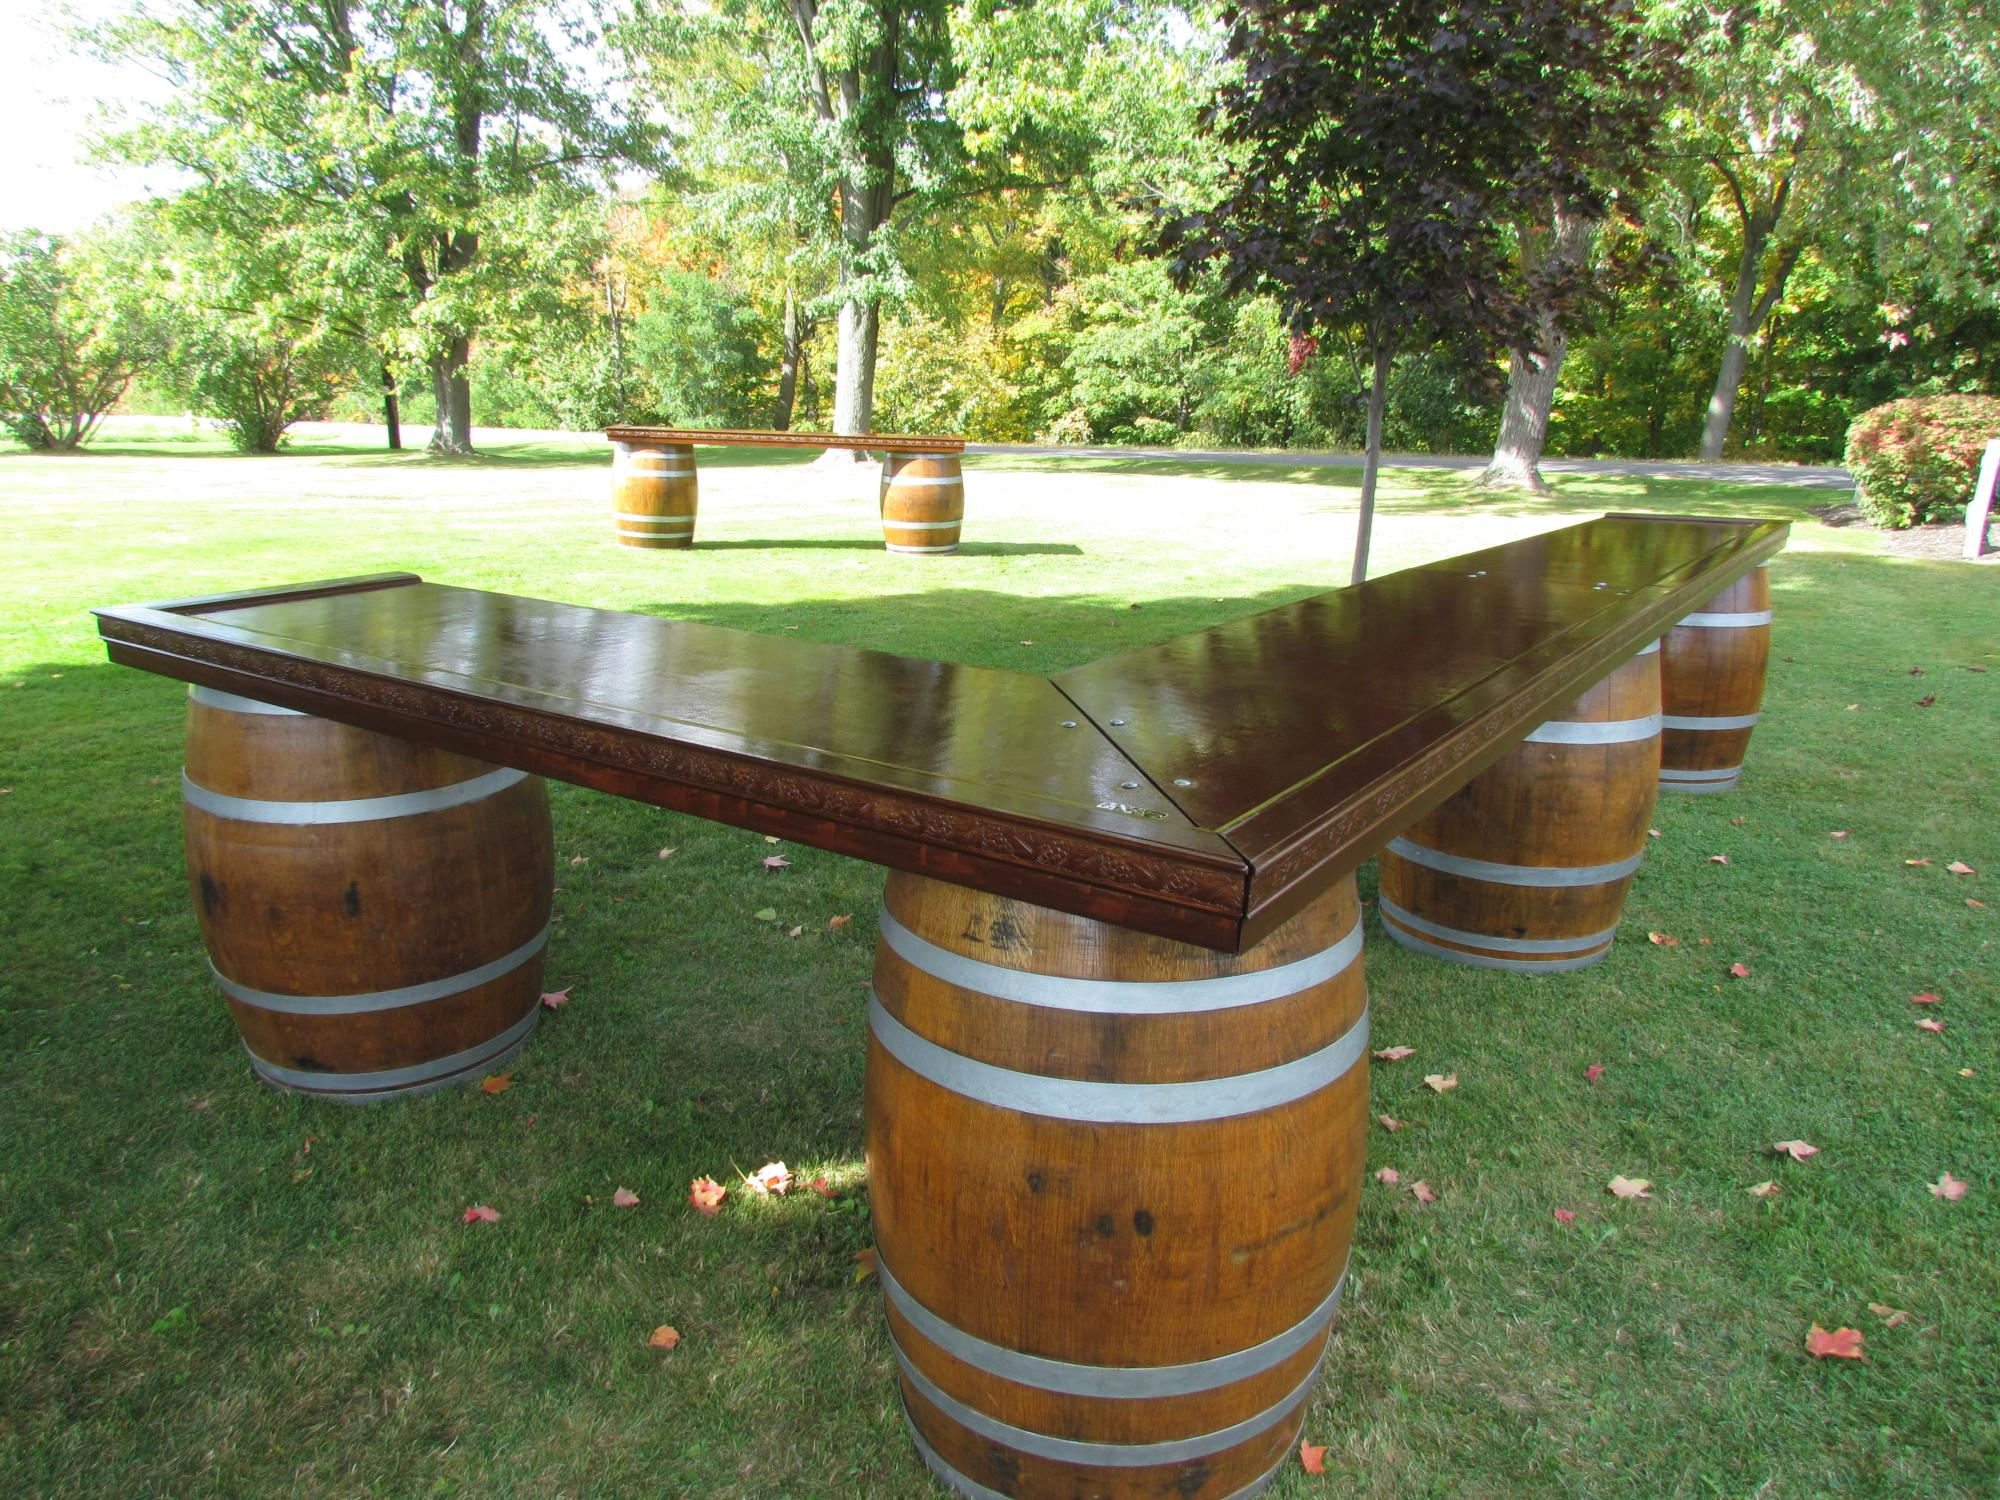 4 barrel Chardonnay- refinished oak wine barrels as the base- 2 barrel Riesling in the background